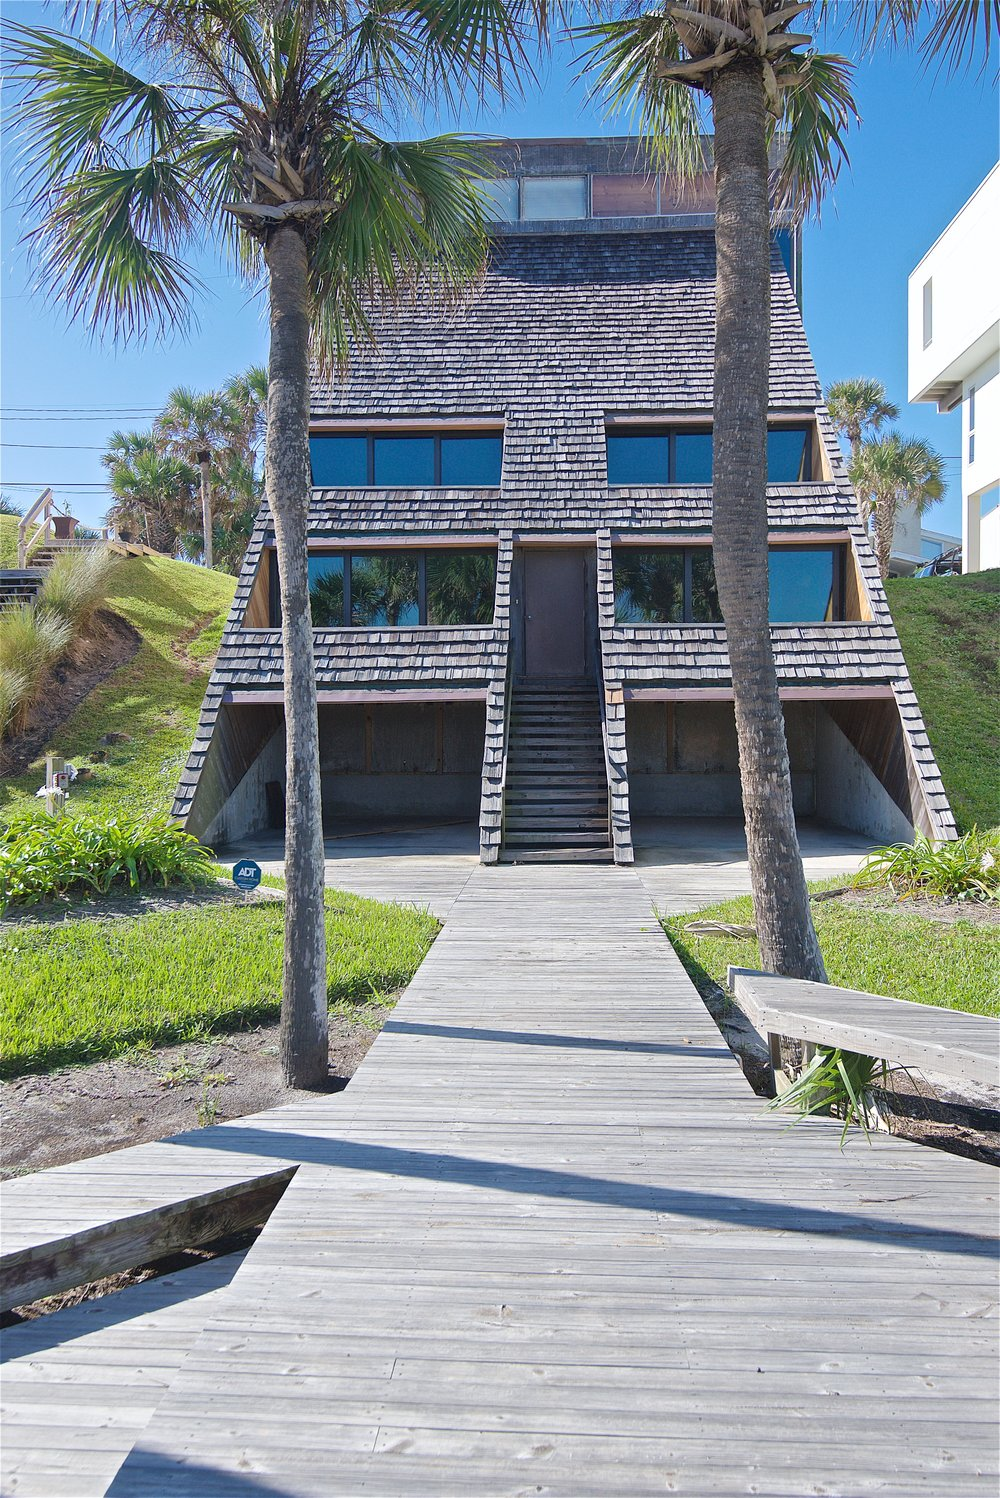 Architect William Morgan oceanfront home renovation, Atlantic Beach, FL | Cornelius Construction Company